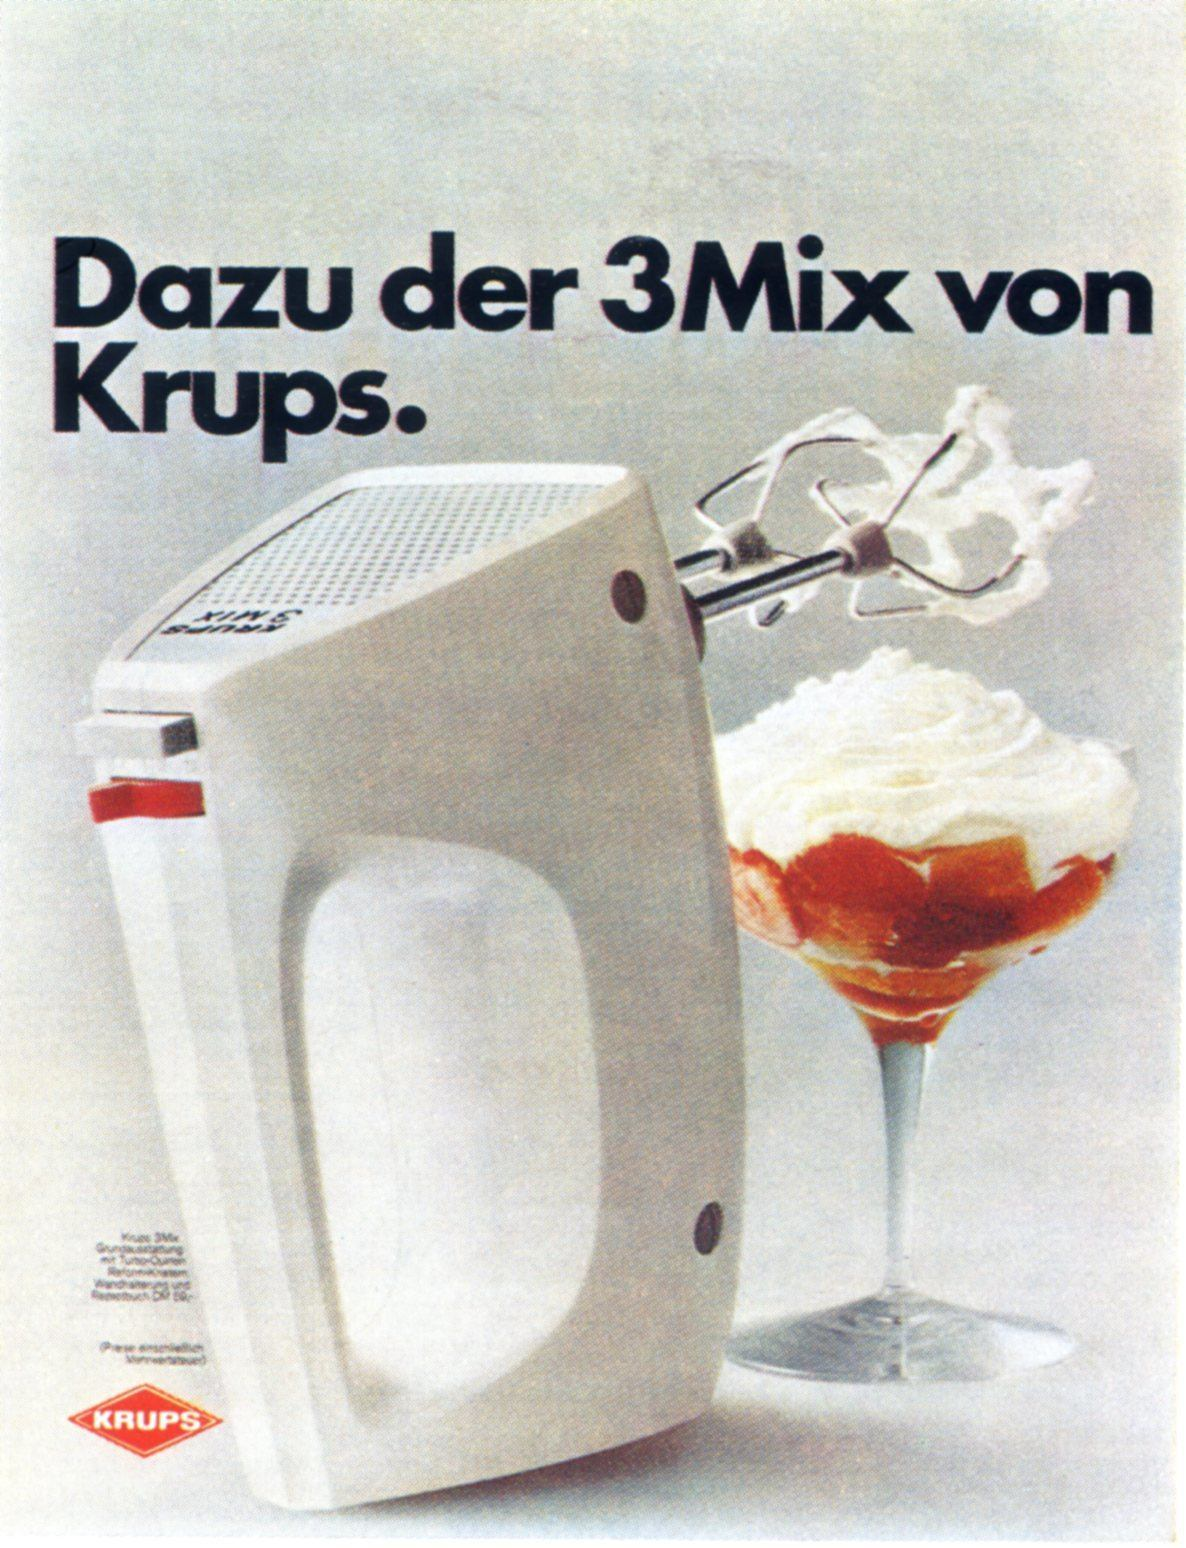 krups small appliances mixer blender